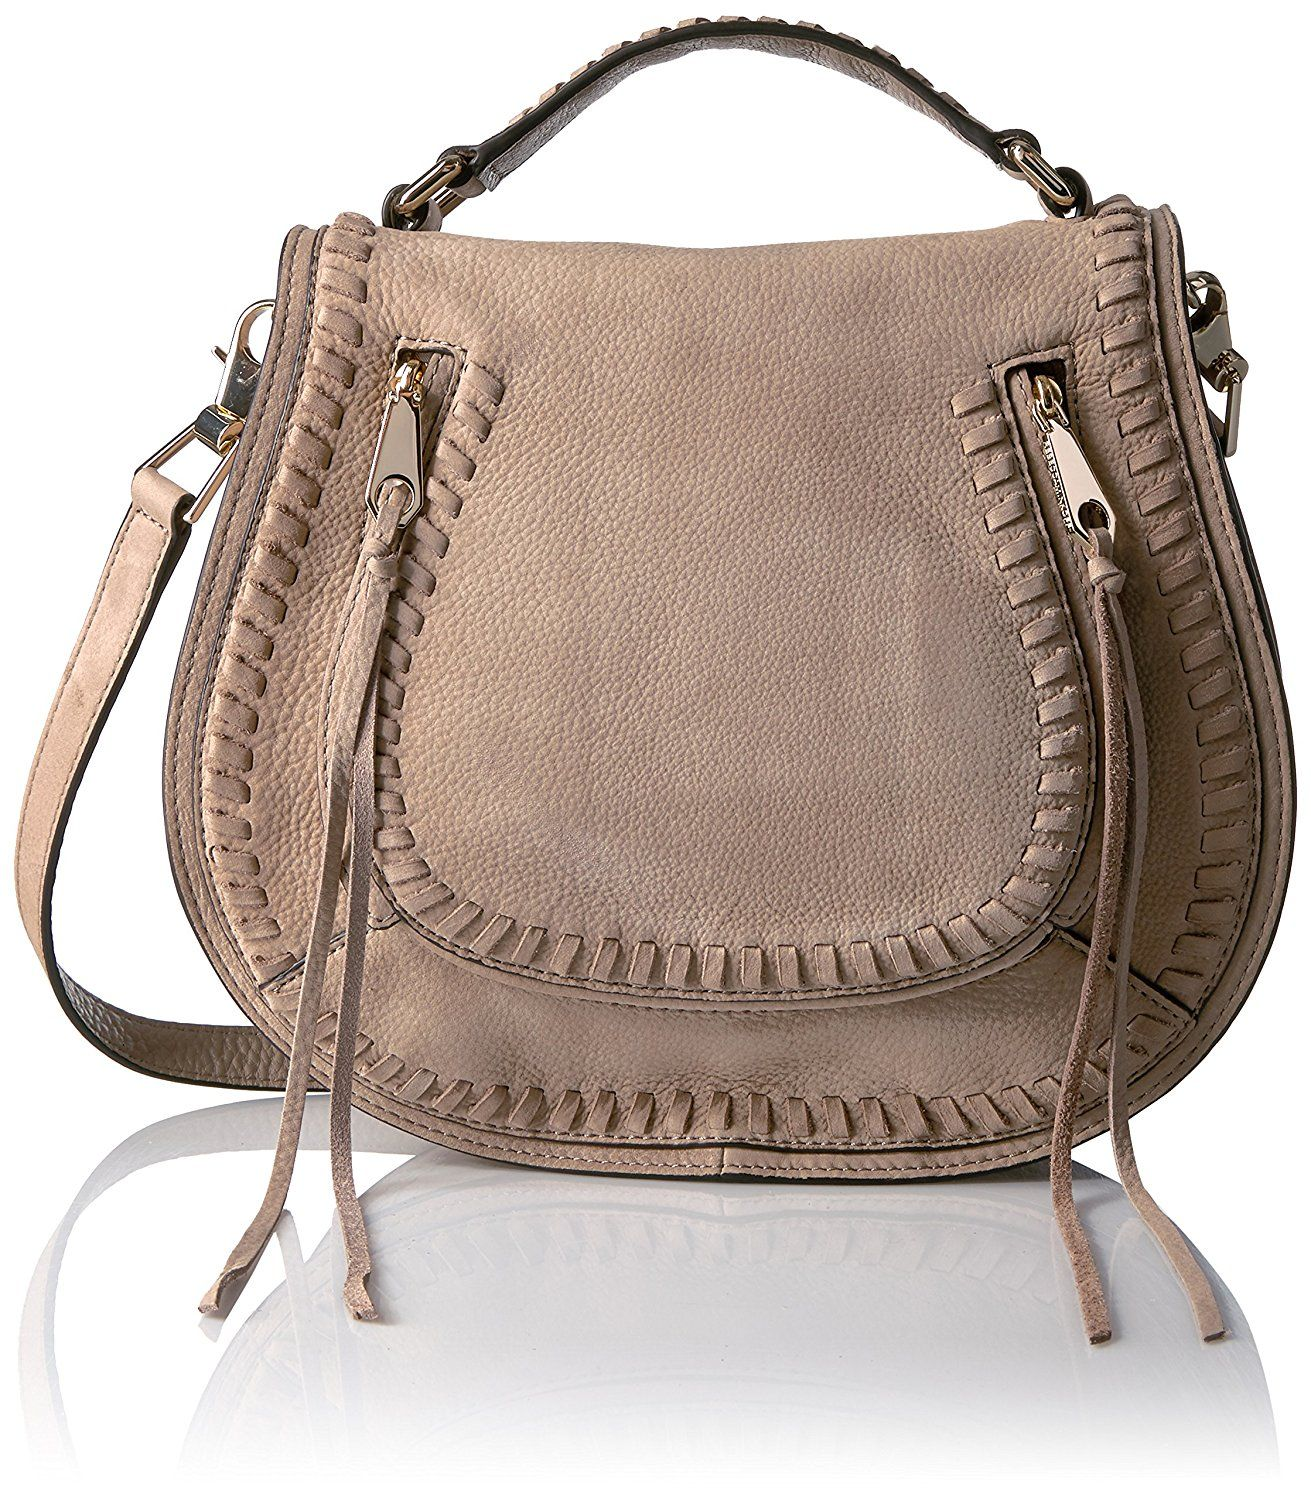 Rebecca Minkoff Vanity Saddle Bag Mushroom Clothing